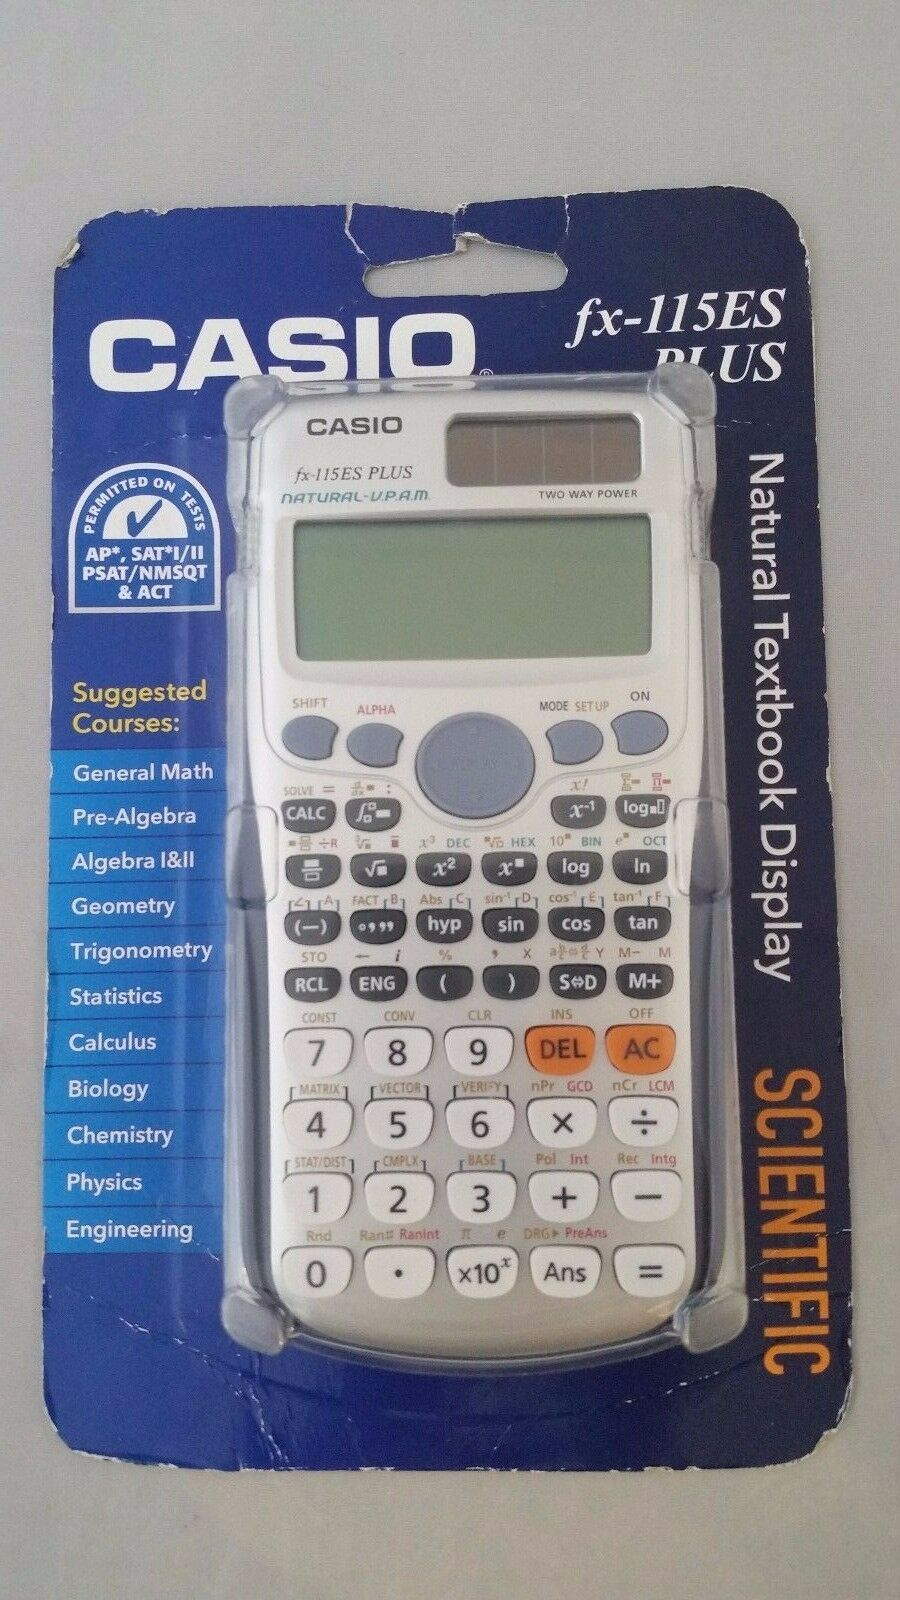 Casio FX-115ES PLUS Scientific Calculator | eBay